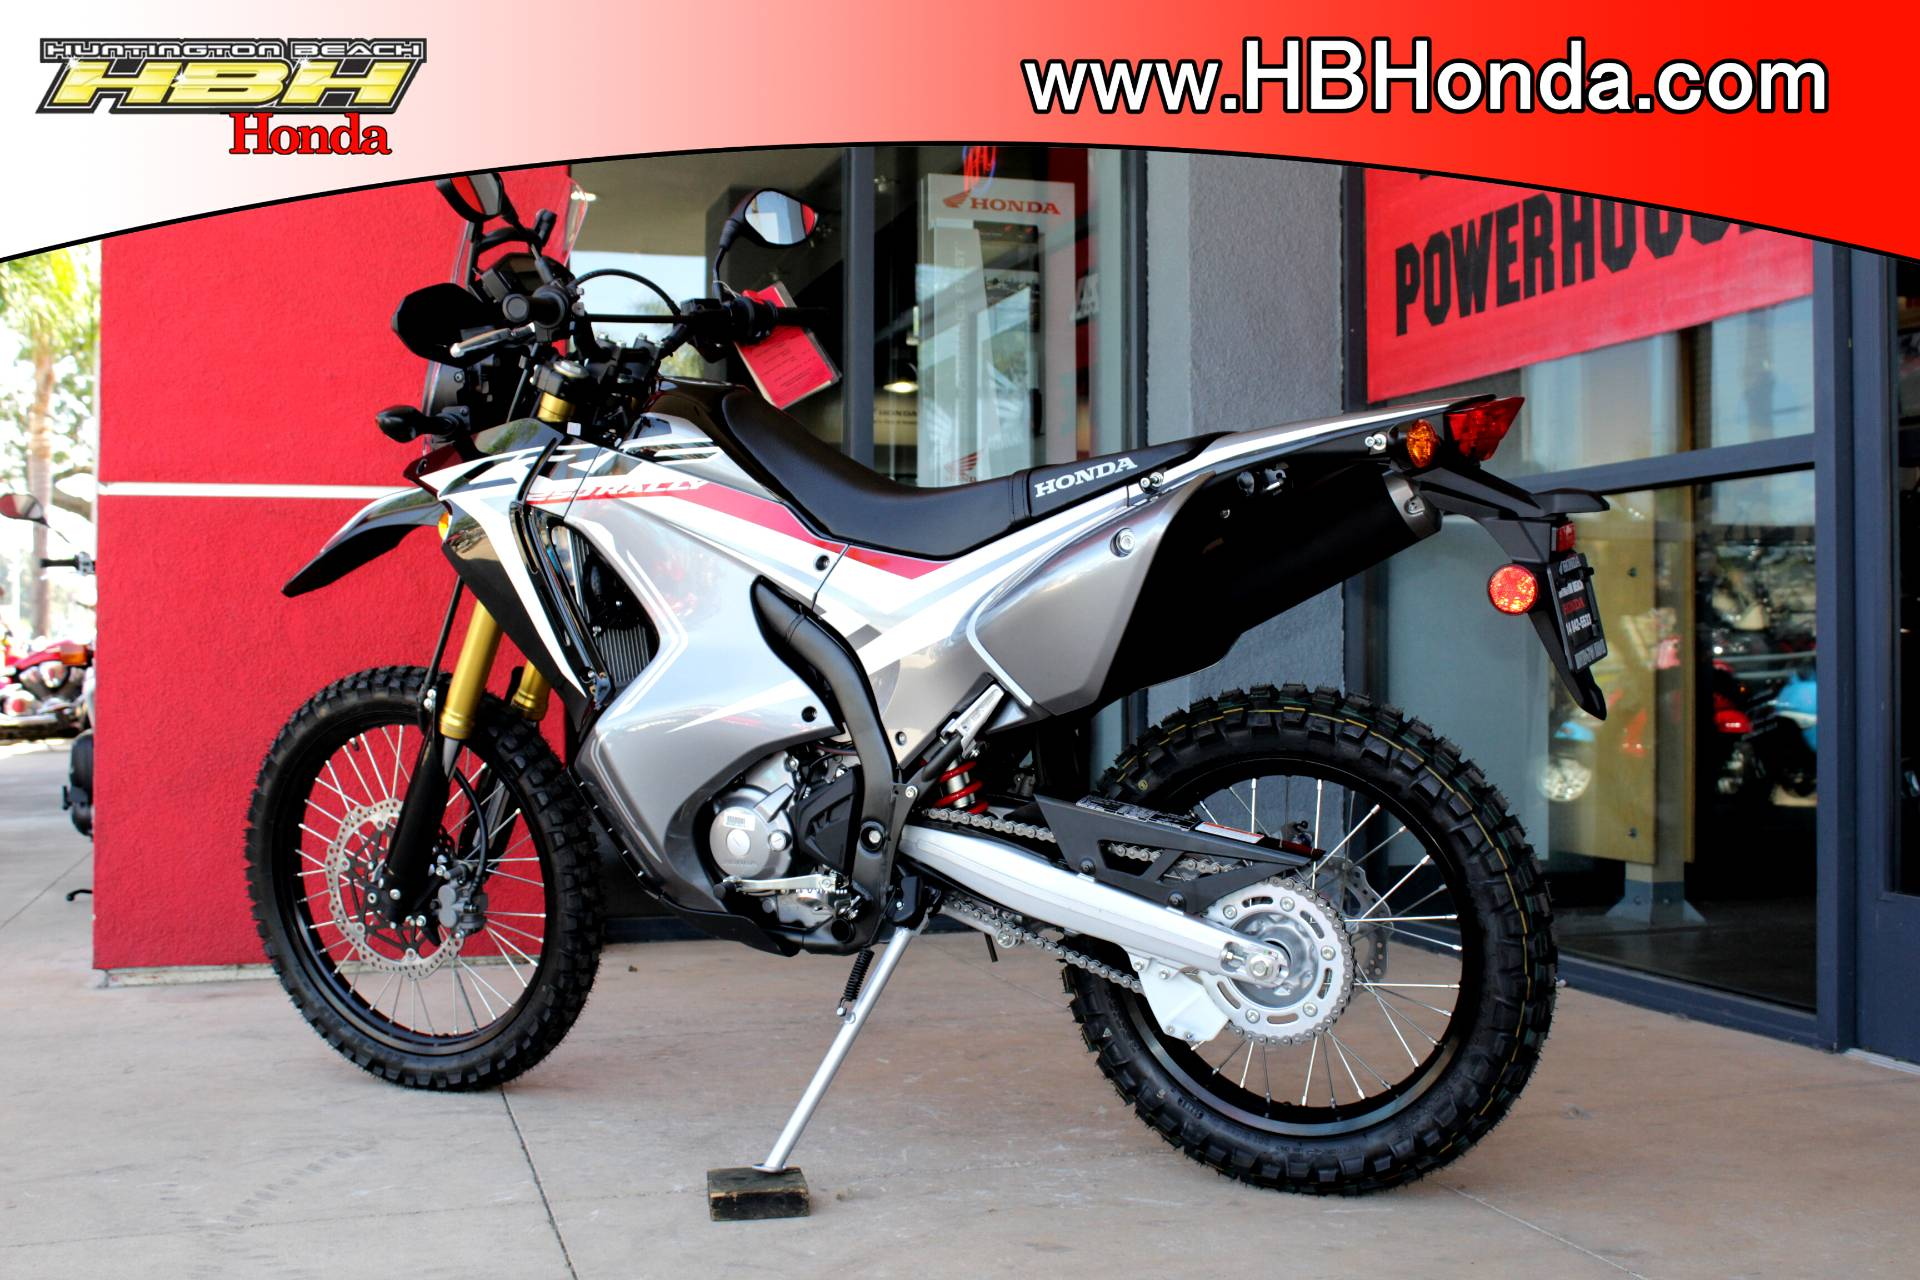 New 2018 Honda Crf250l Rally Motorcycles For Sale In Huntington